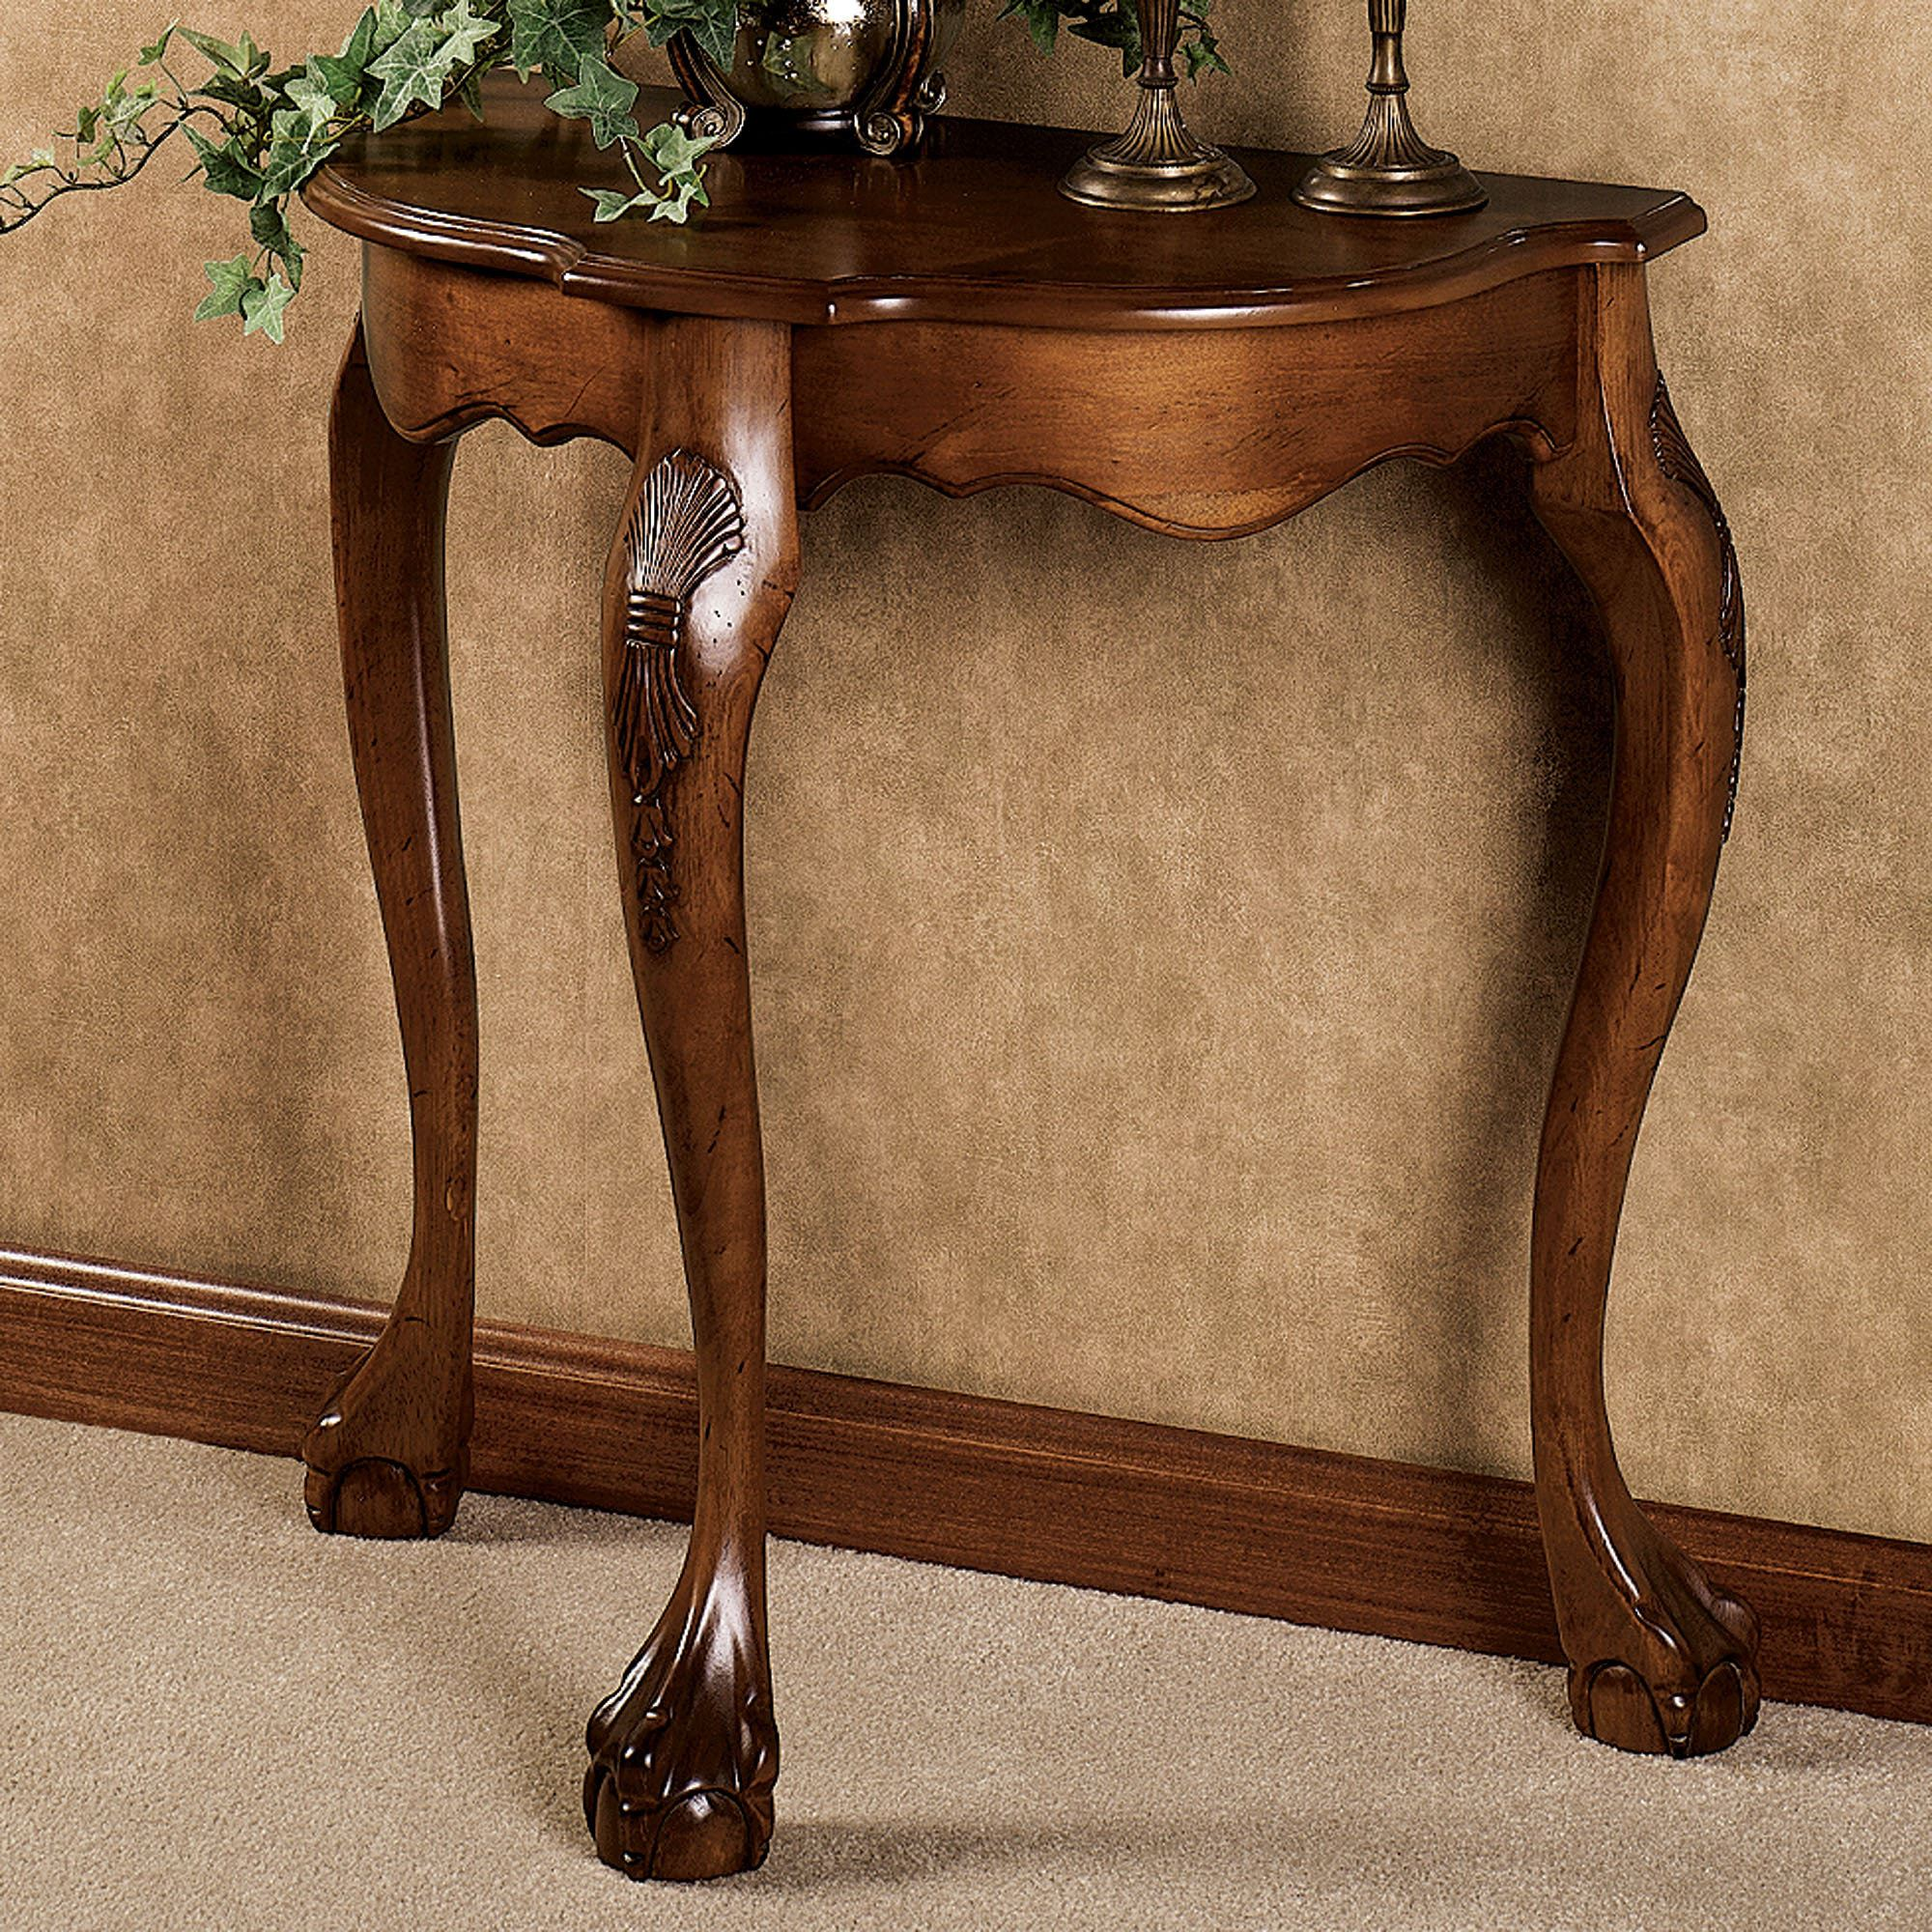 wooden console table. Raphael Console Table Antique Walnut Wooden